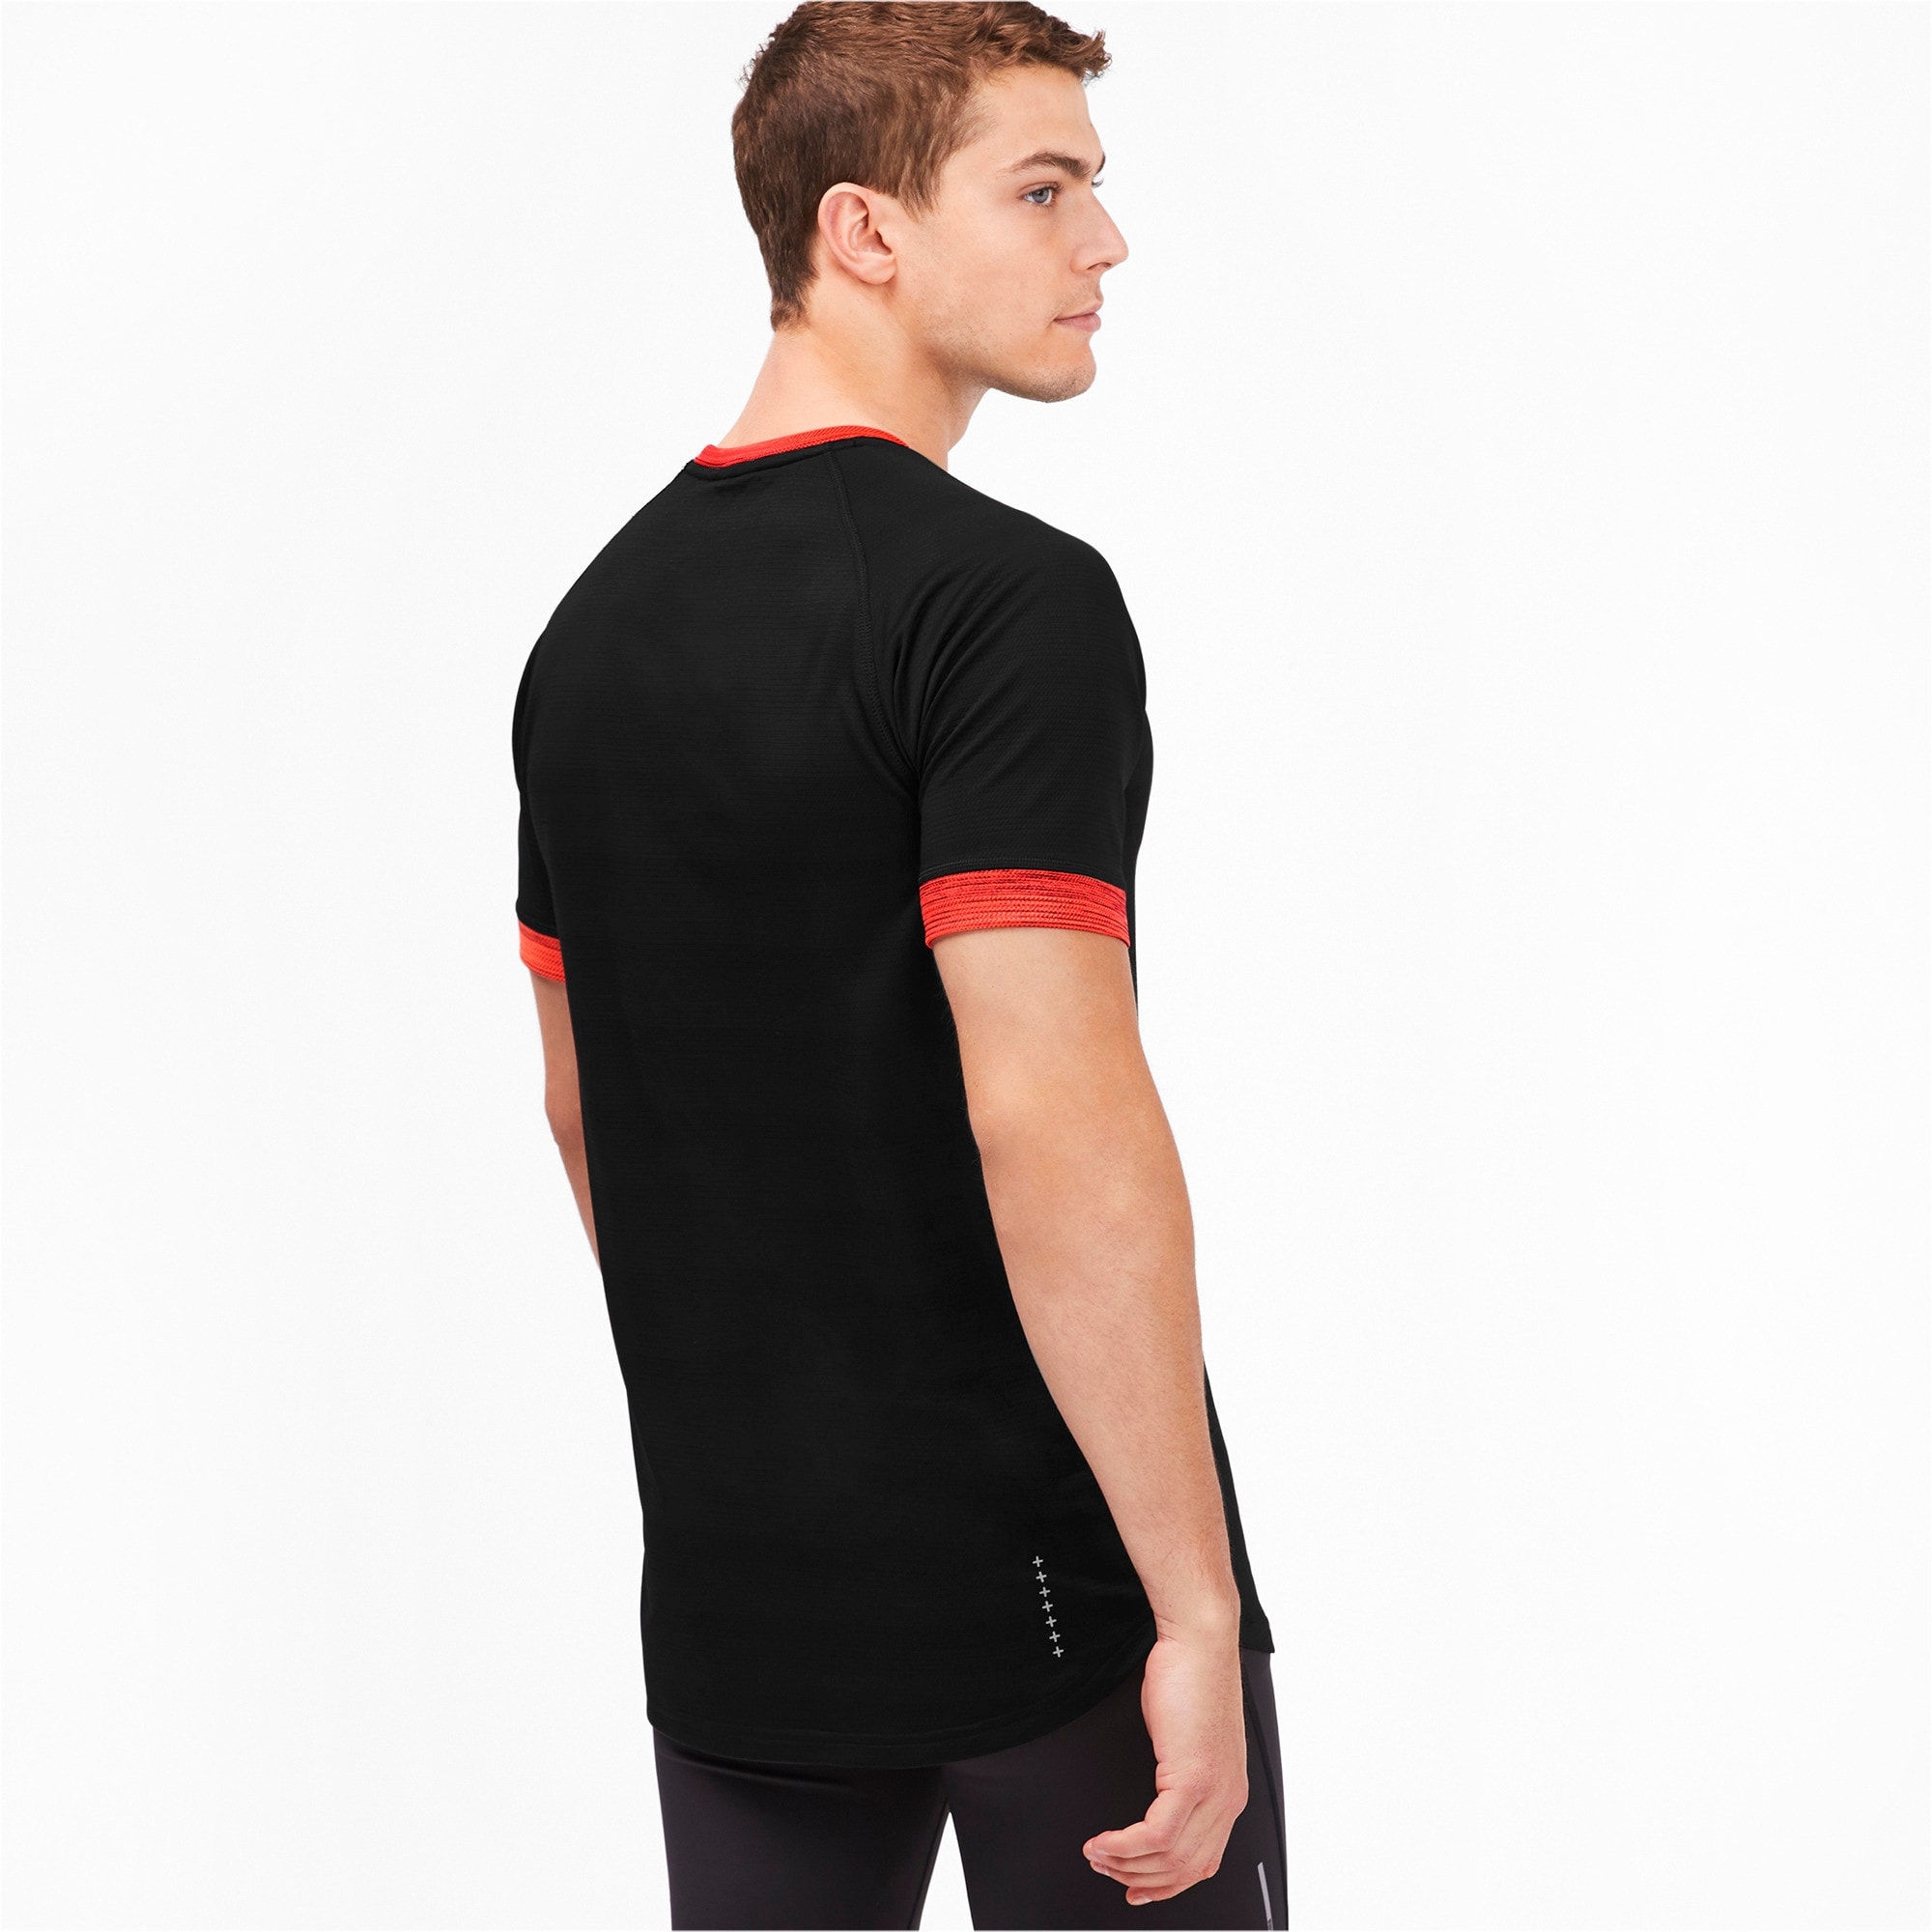 Thumbnail 2 of Get Fast THERMO R+ Men's Running Tee, Black Htr-Nrgy Red Htr, medium-IND